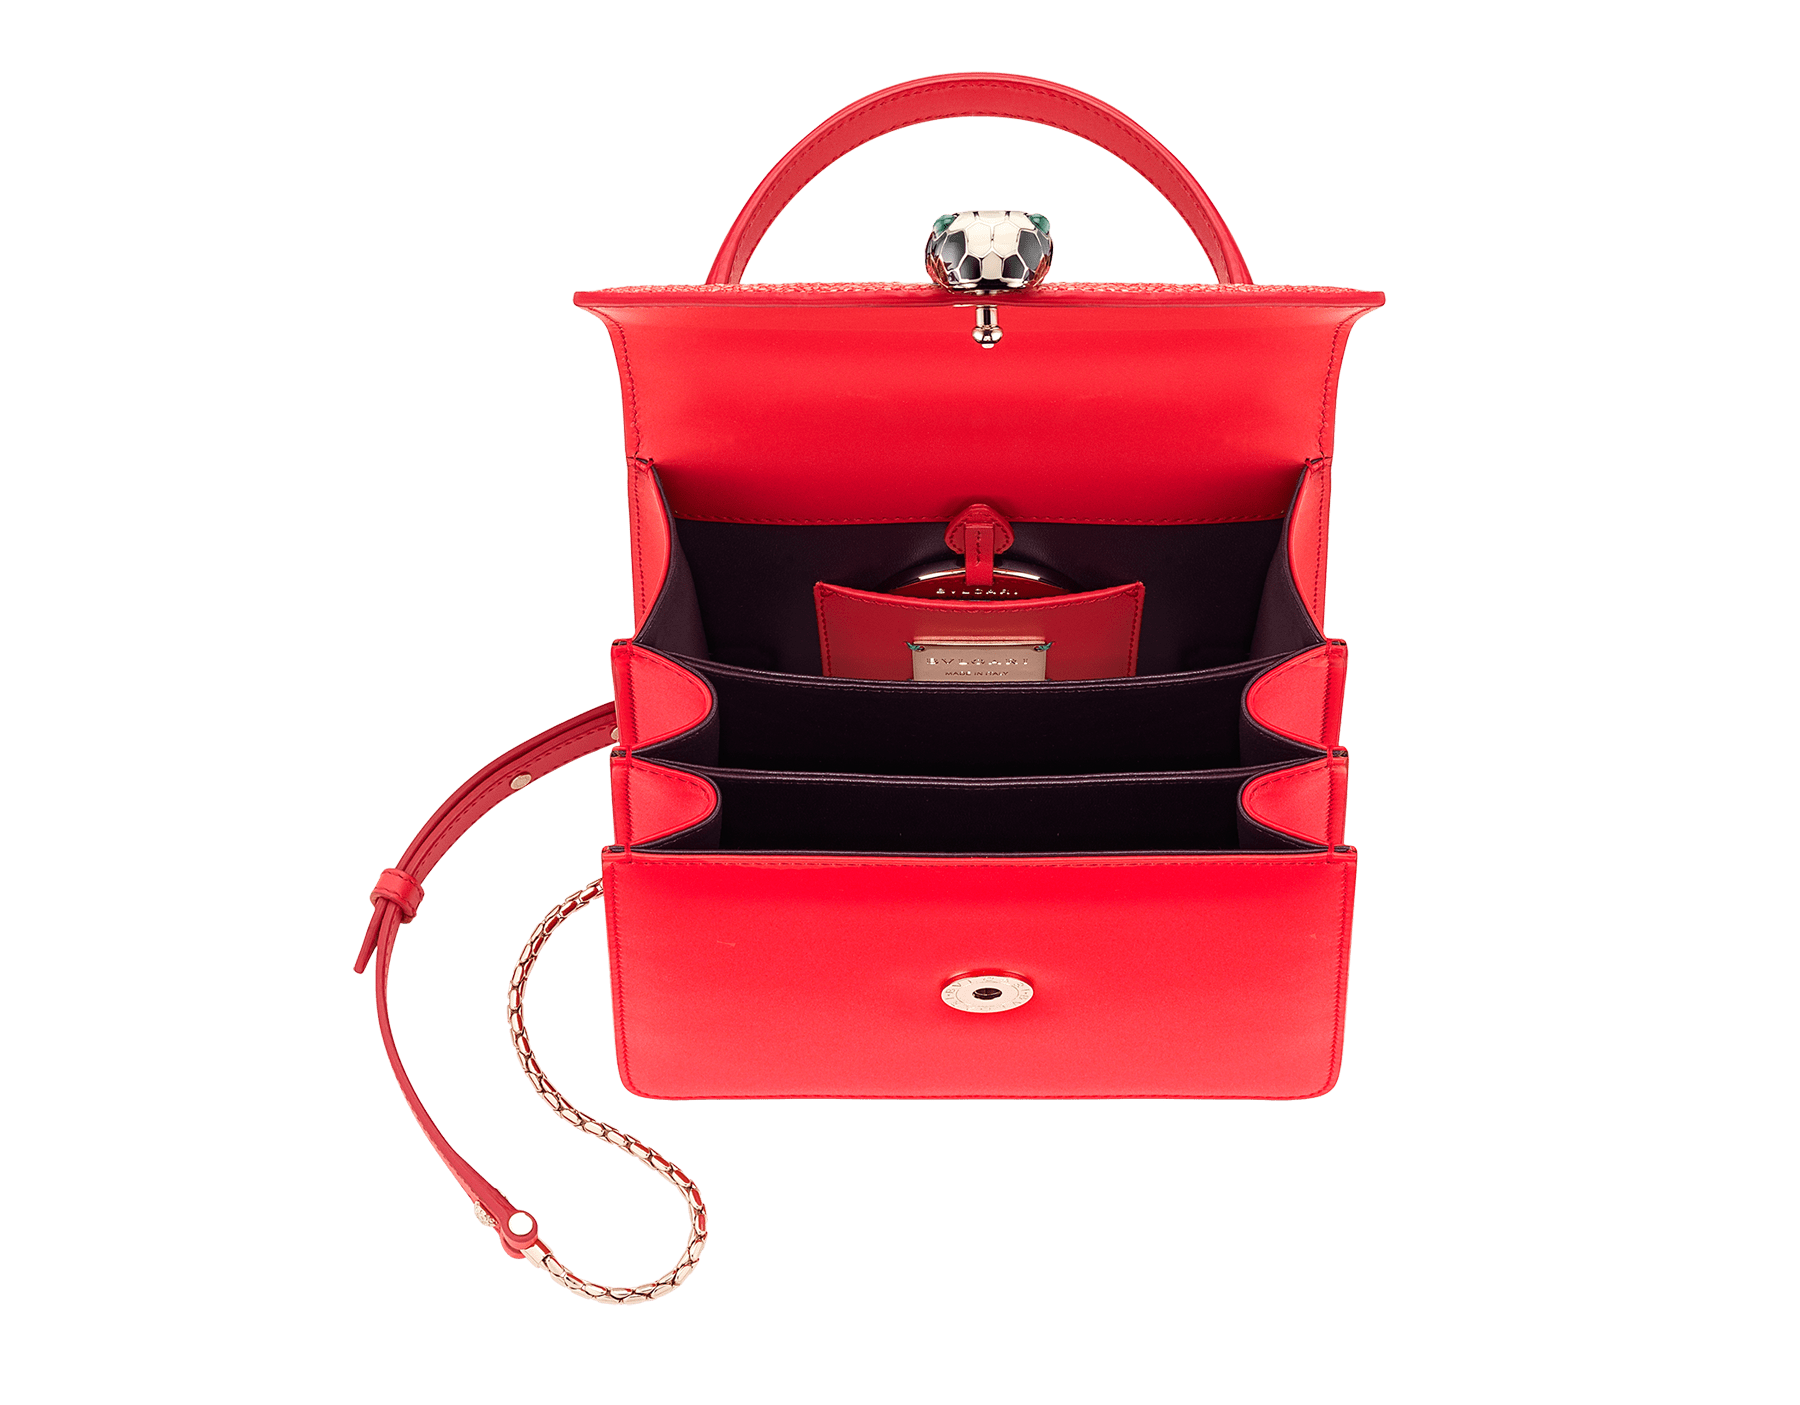 Serpenti Forever crossbody bag in sea star coral galuchat skin and smooth calf leather. Snakehead closure in light gold plated brass decorated with black and white enamel, and green malachite eyes. 287977 image 4